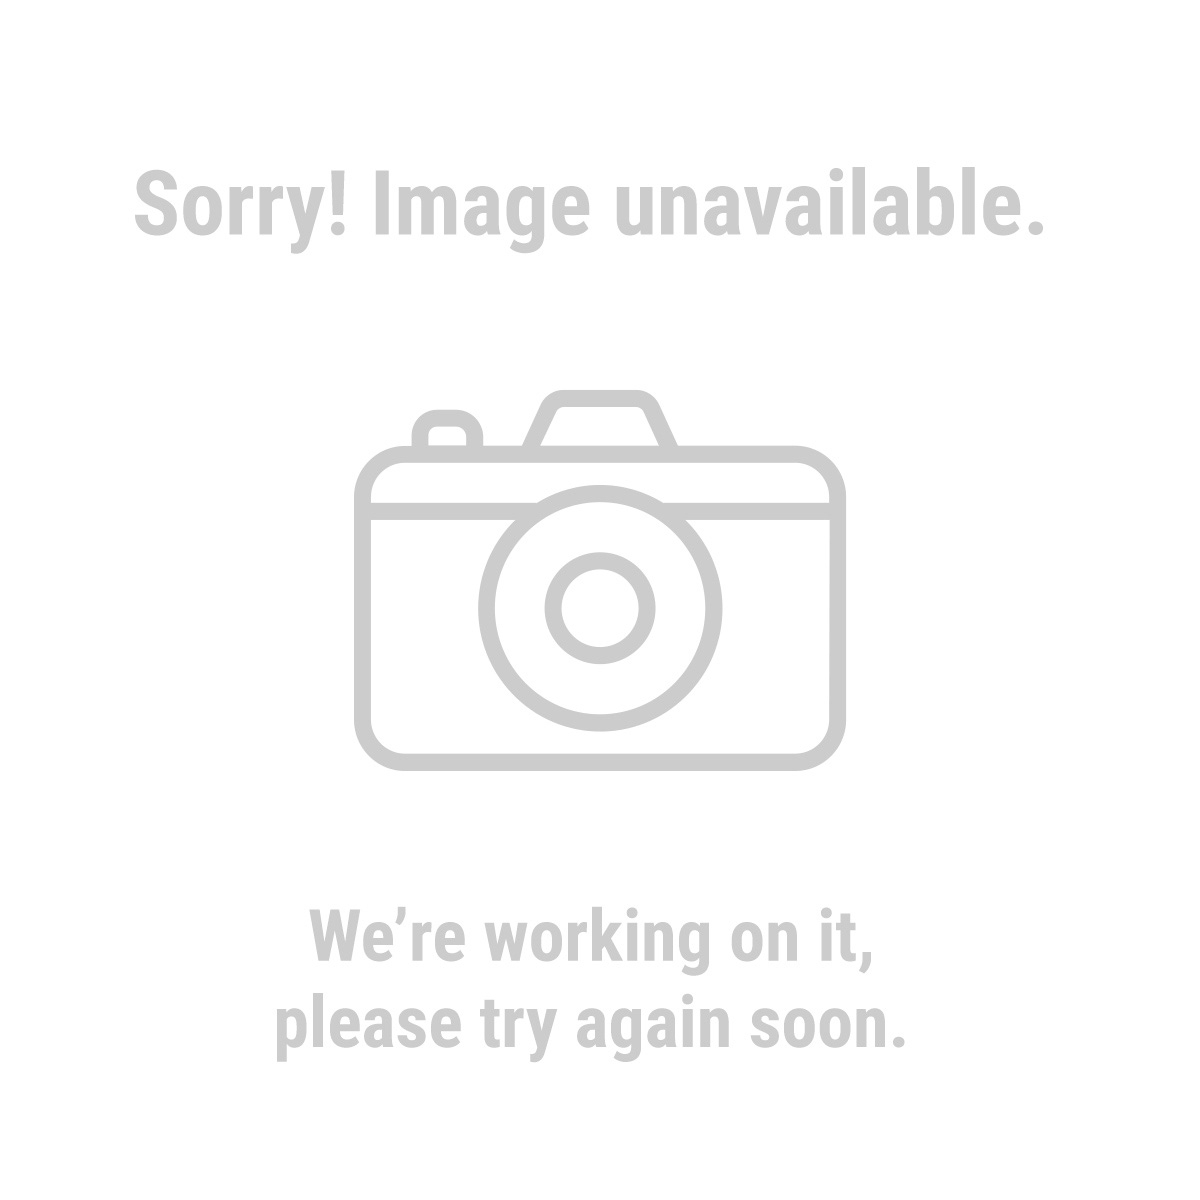 Warrior® 69808 7 Piece 100 Grit Aluminum Oxide Sandpaper Sheets